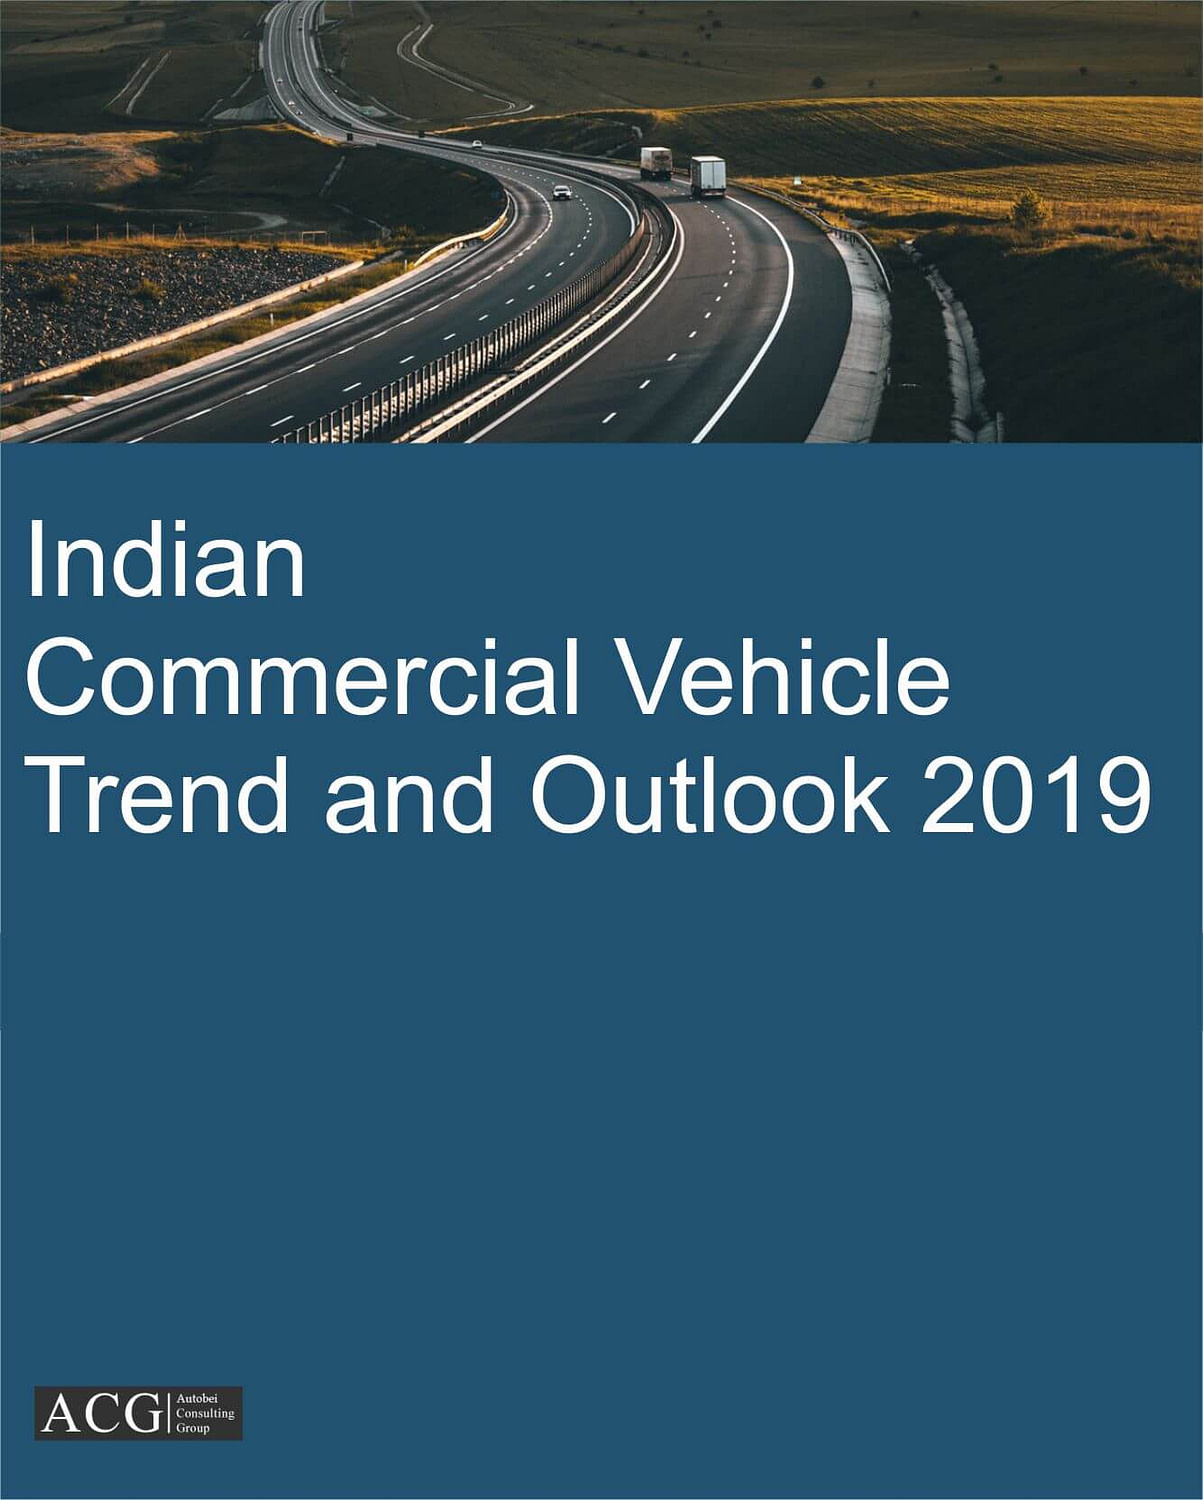 Indian Commercial Vehicle Trend and Outlook 2019